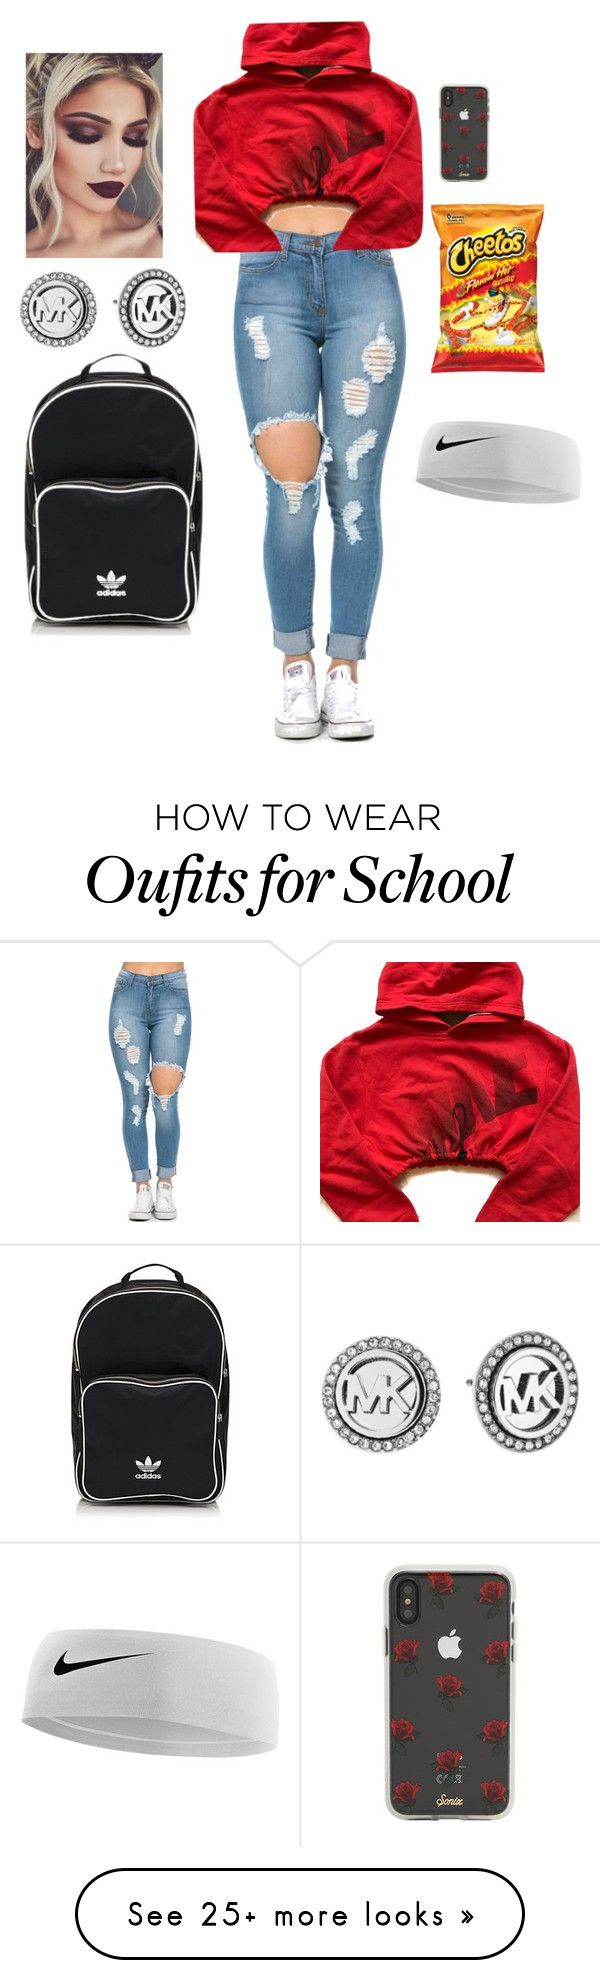 """Everyday outfit "" by yoselin530 on Polyvore featuring NIKE, Sonix, adidas Originals and Michael Kors"